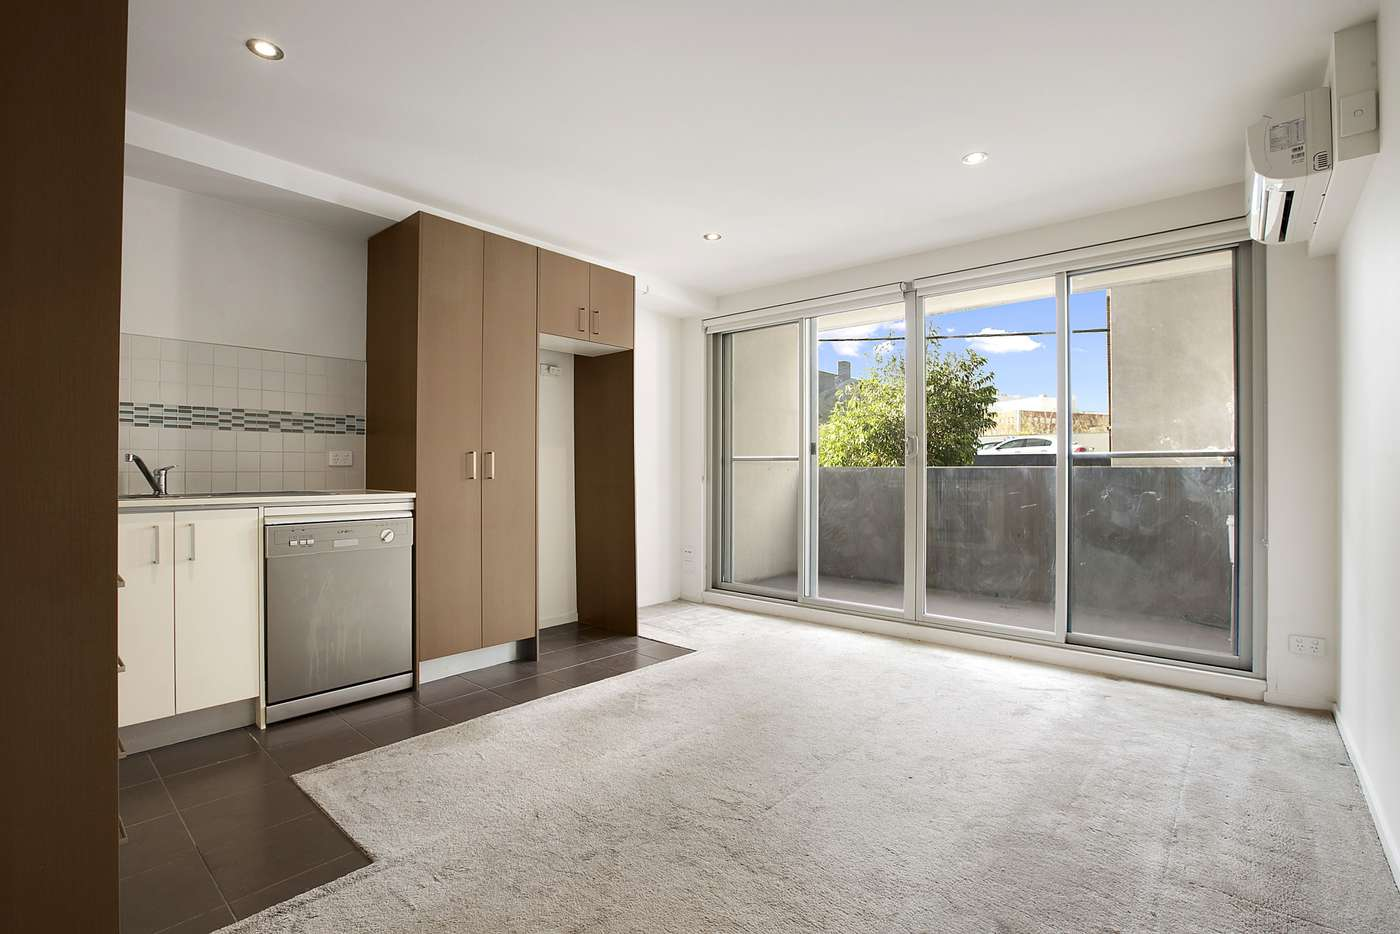 Main view of Homely apartment listing, 101/9-13 OConnell Street, North Melbourne VIC 3051